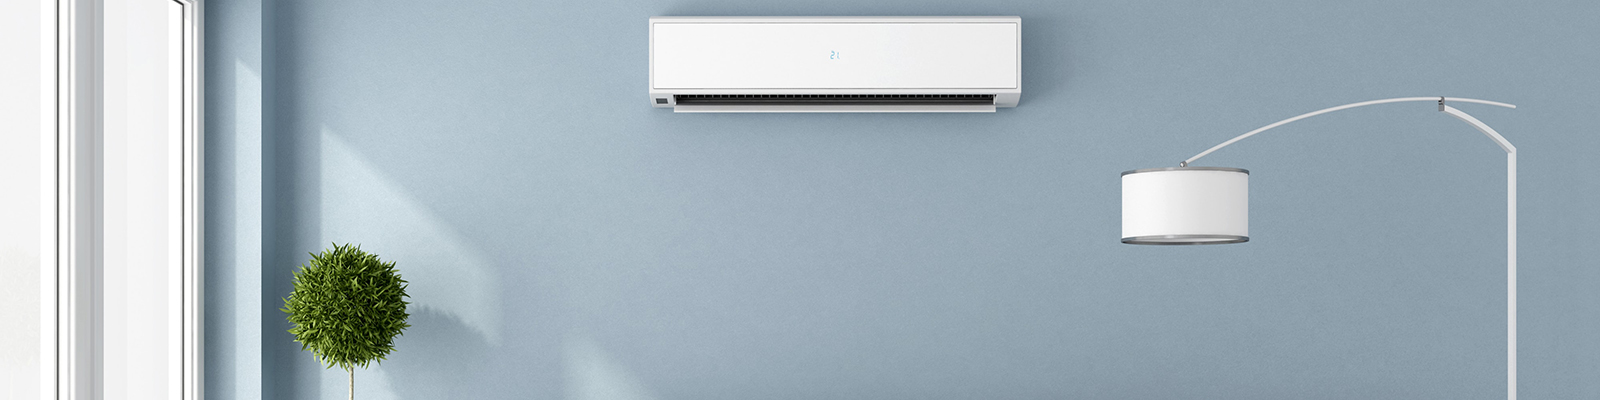 Ducted Air Conditioners vs Split System Buy Reef Air